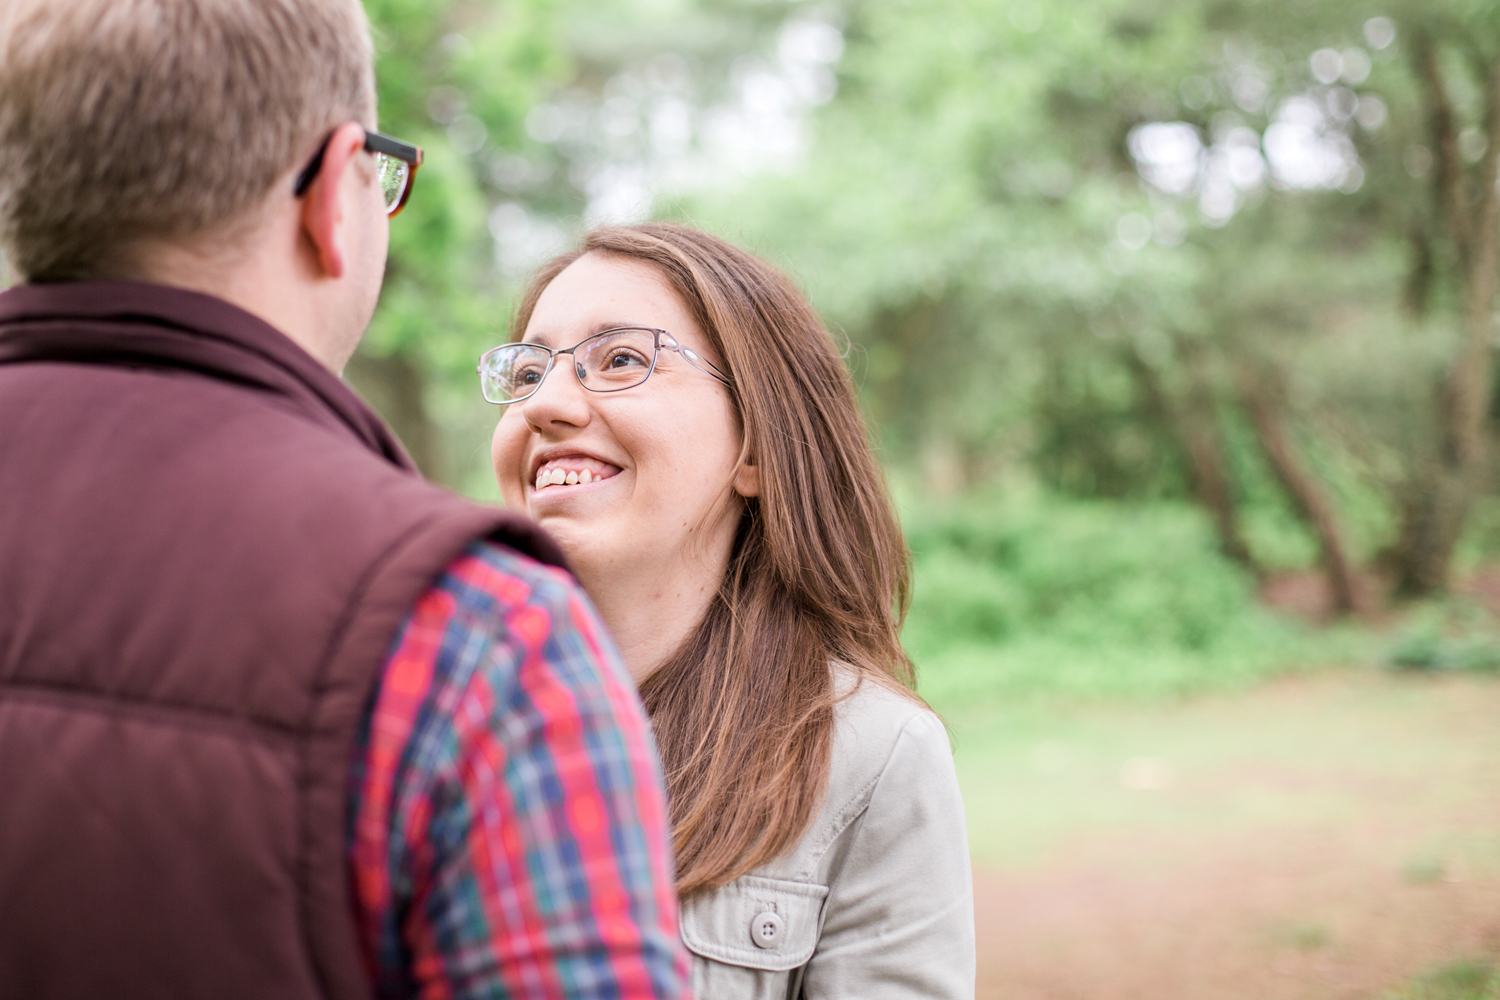 003Charlotte & Kelvin - Lickey Hills Engagement - Sophie Evans Photography - Warwickshire Wedding Photographer.jpg